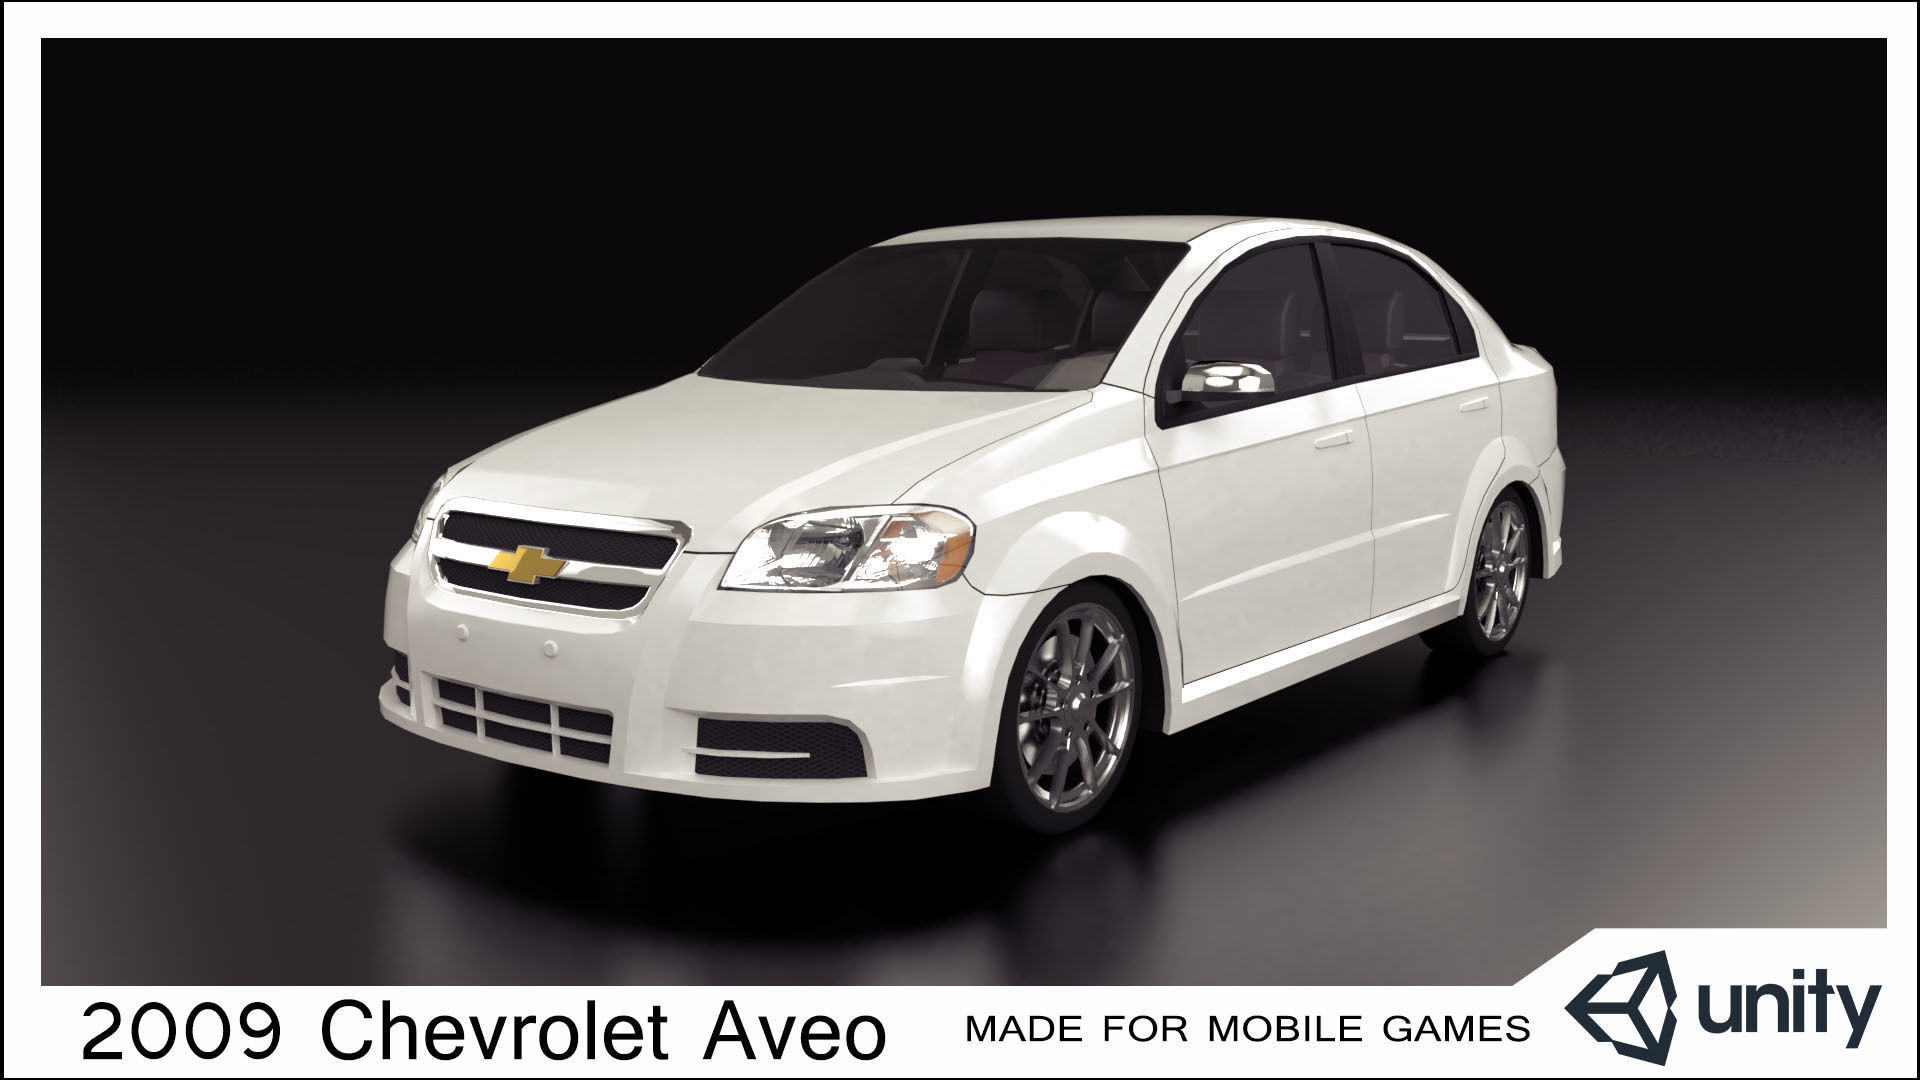 https://img-new.cgtrader.com/items/875433/66132bbf6a/2009-chevrolet-aveo-3d-model-low-poly-fbx.jpg